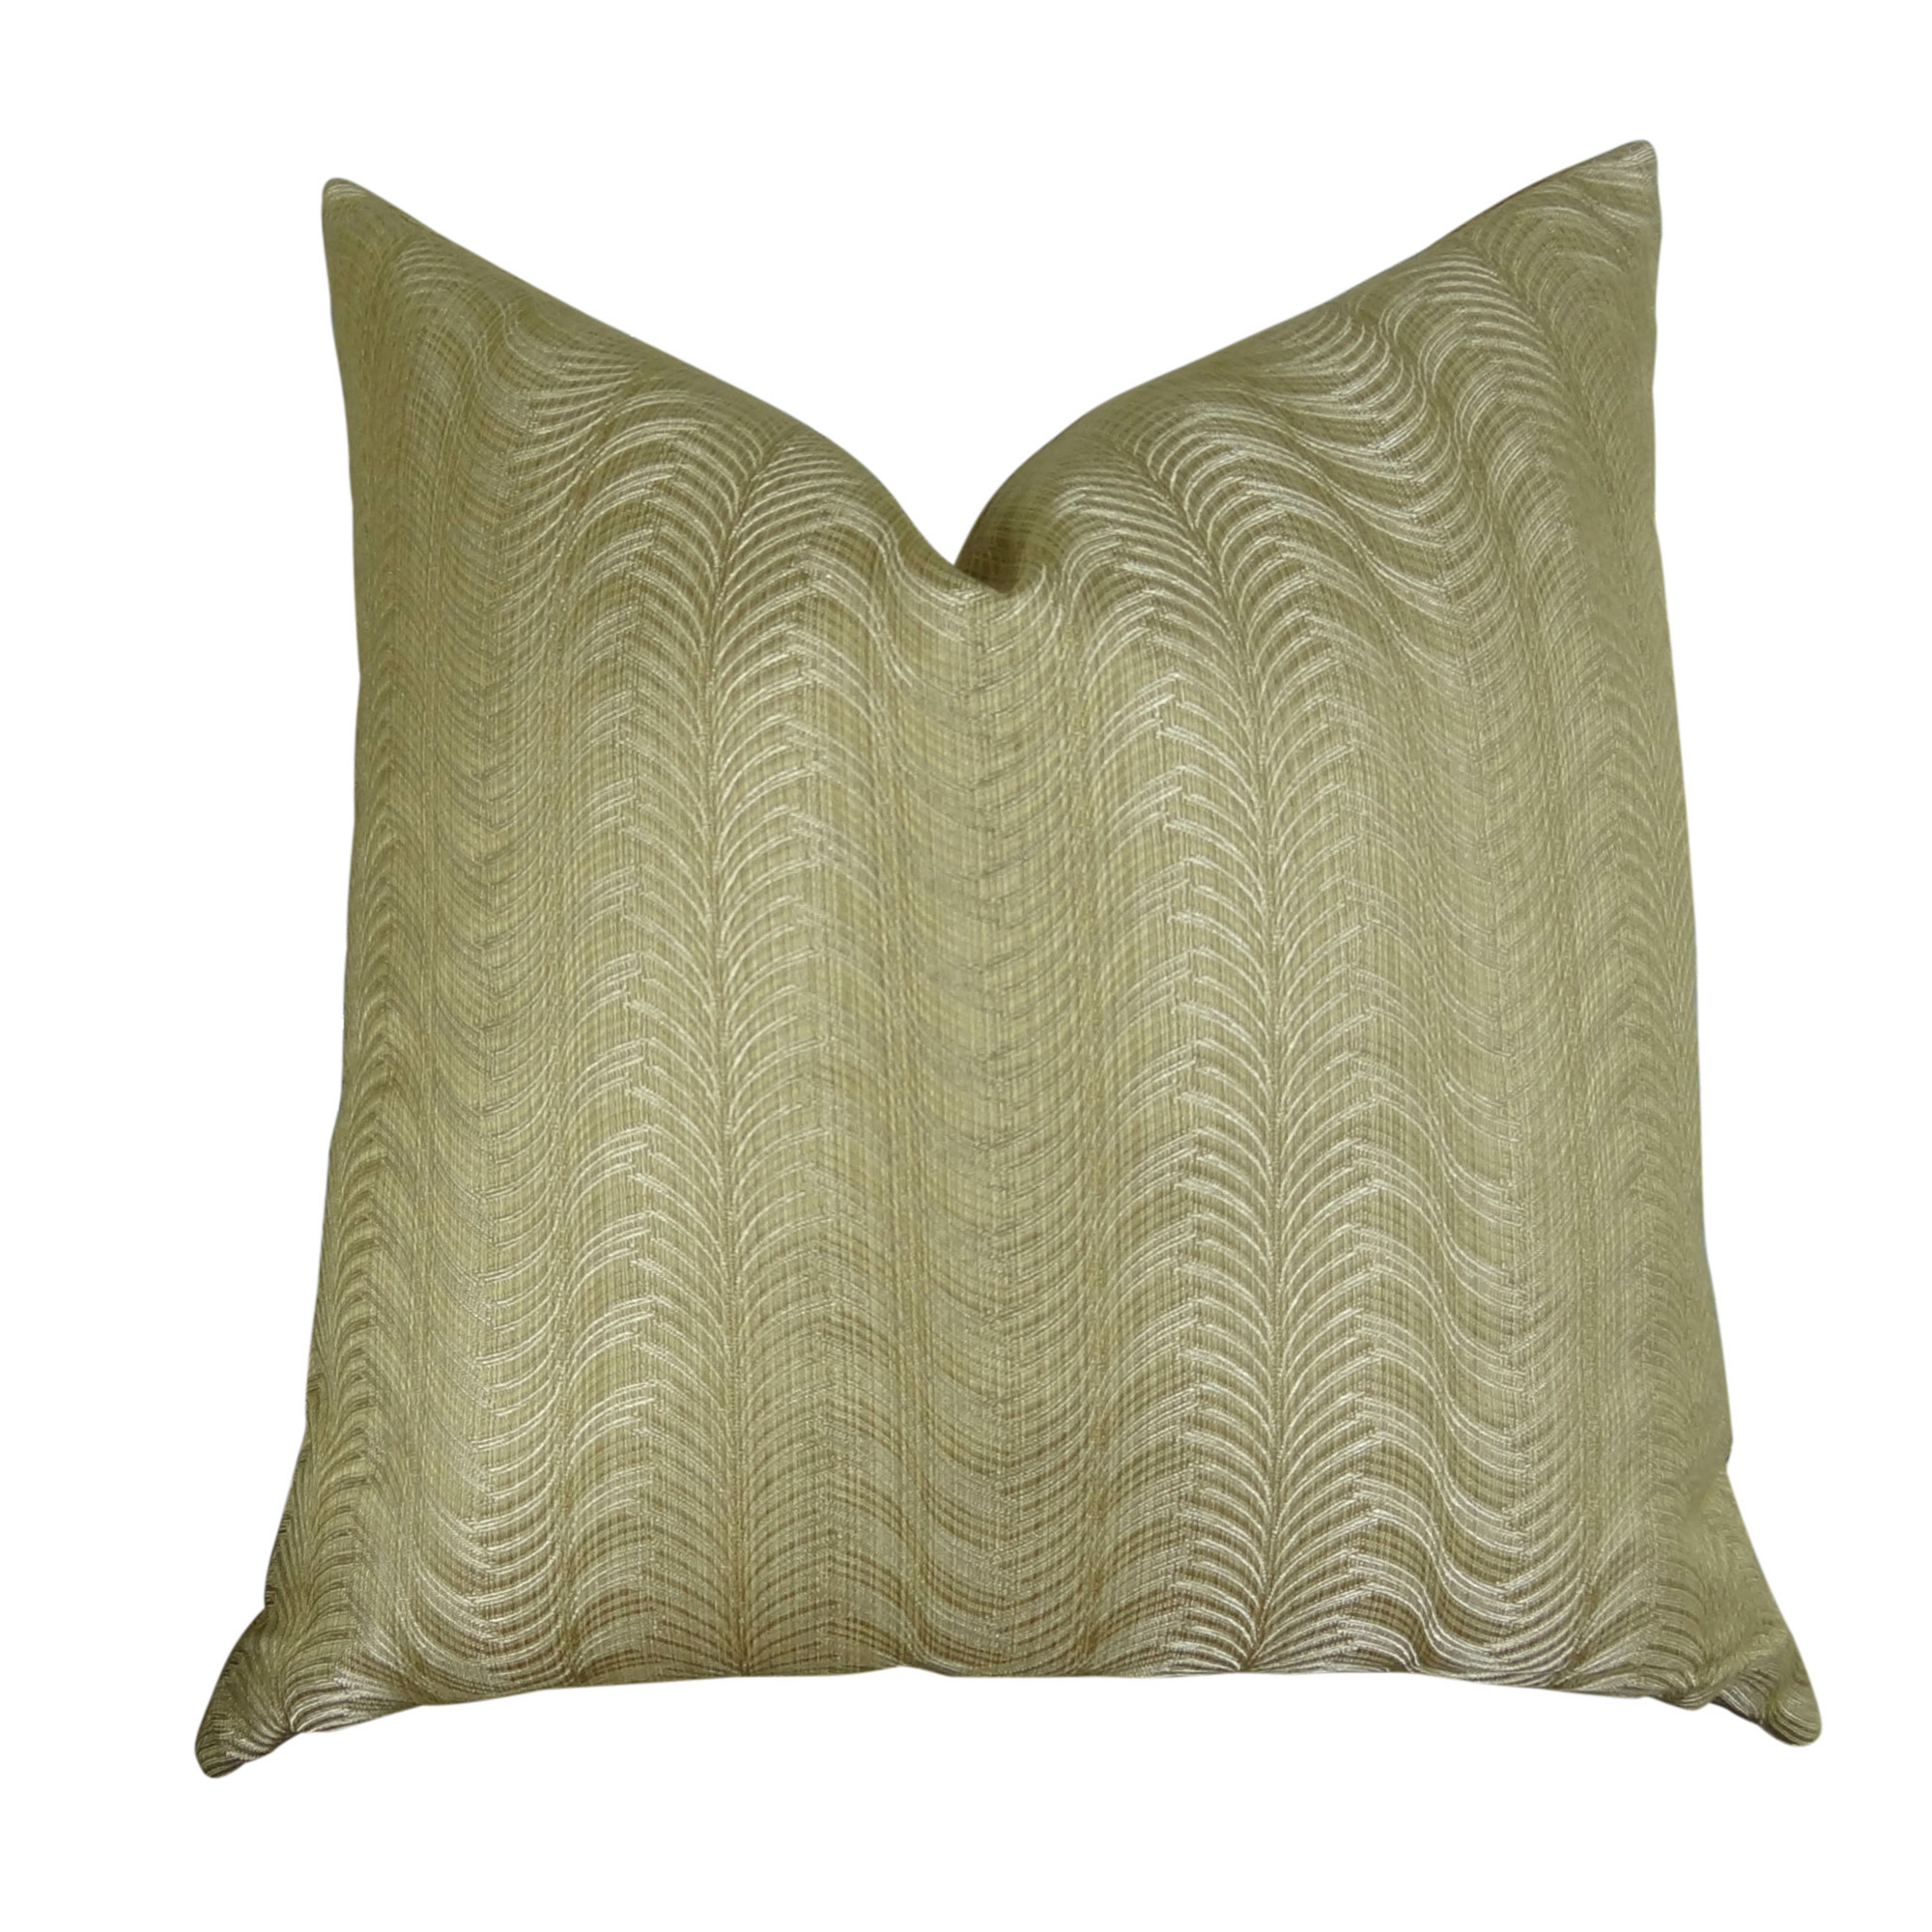 Delicate Waves Handmade Throw Pillow